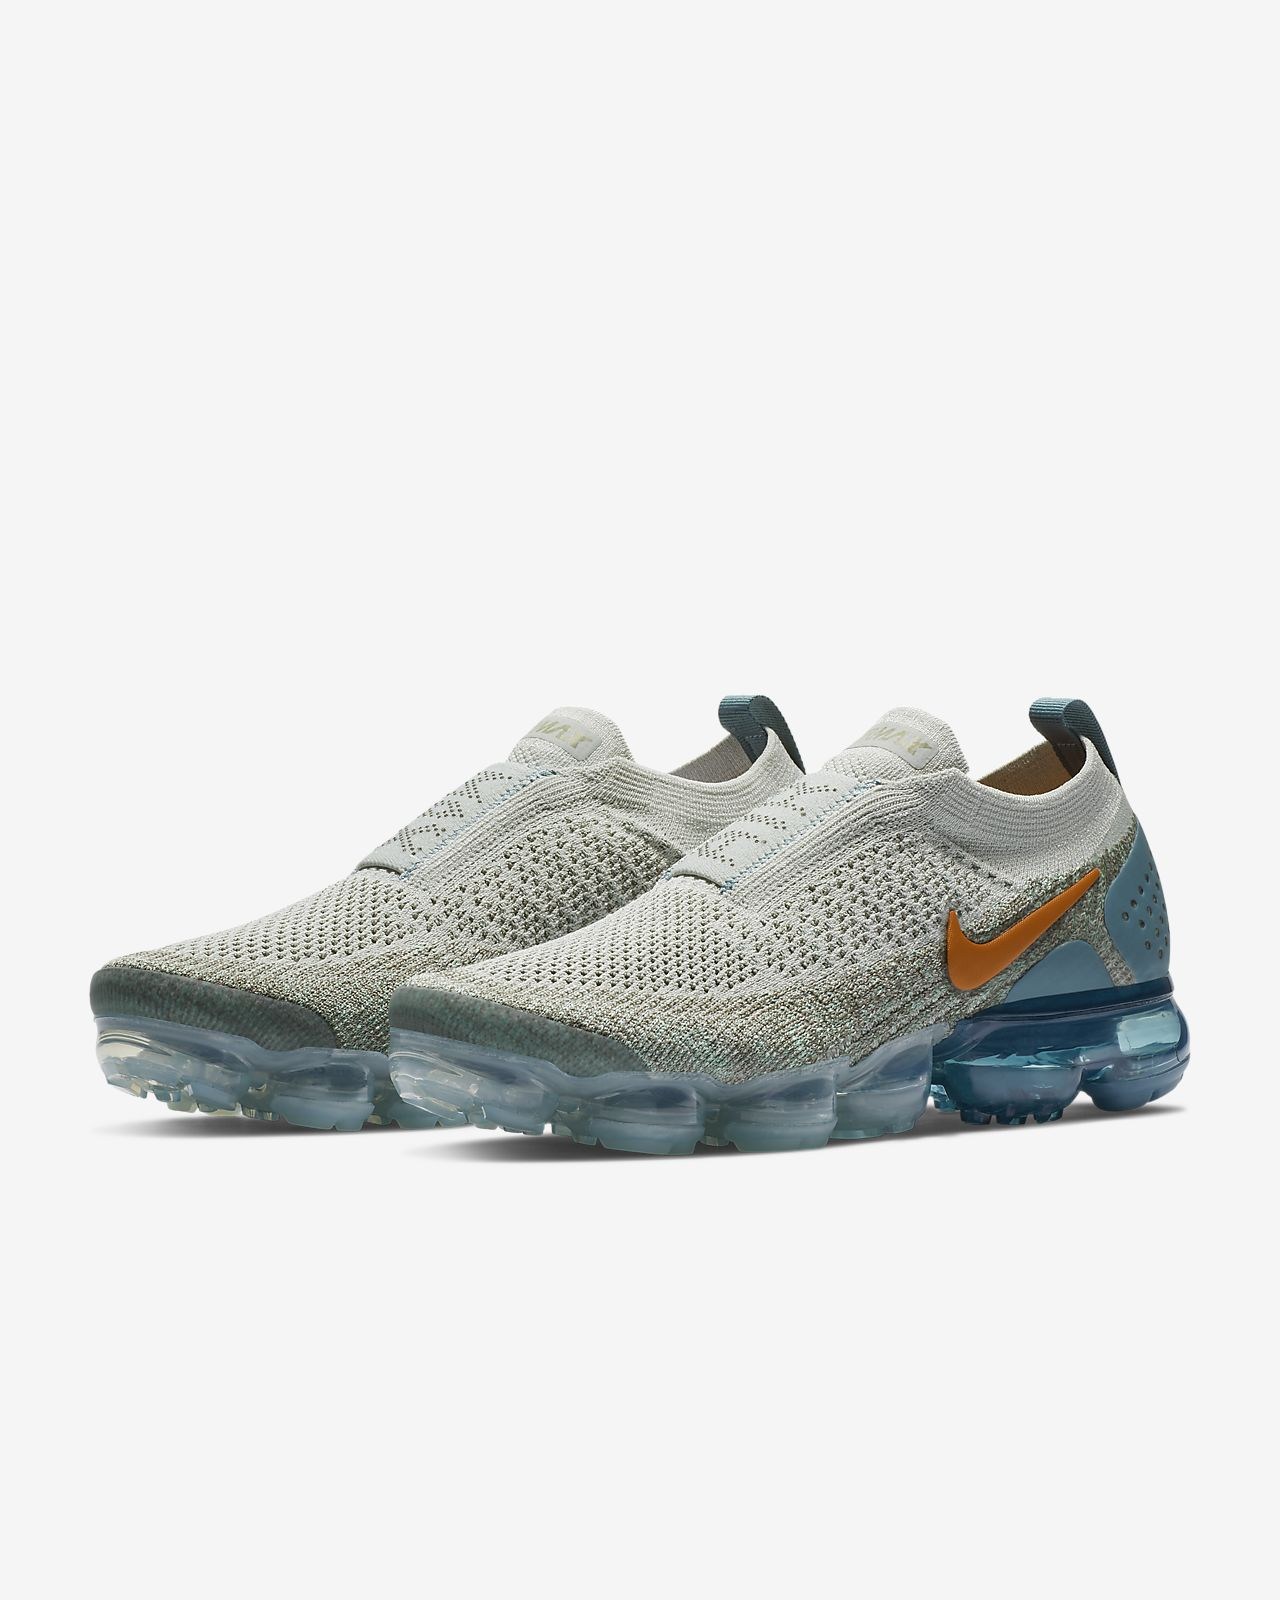 separation shoes 0888f f72e7 Low Resolution Nike Air VaporMax Flyknit Moc 2 Women s Shoe Nike Air  VaporMax Flyknit Moc 2 Women s Shoe